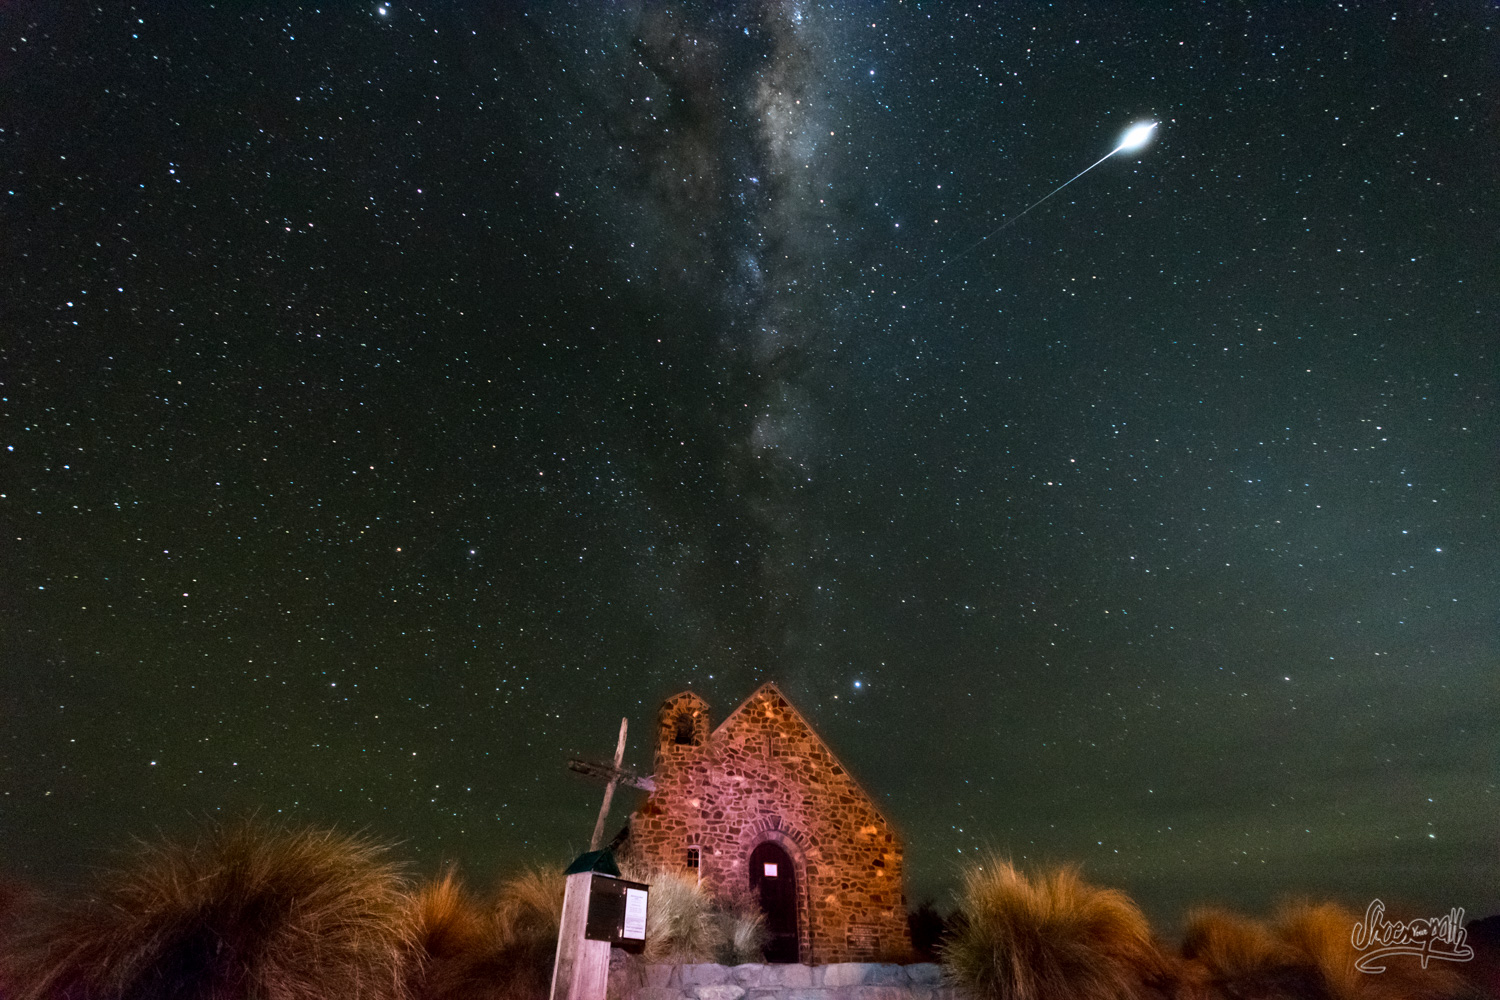 Perfect timing ! The Milky Way is giving us a show over the Church of the good Shepherd in Tekapo.